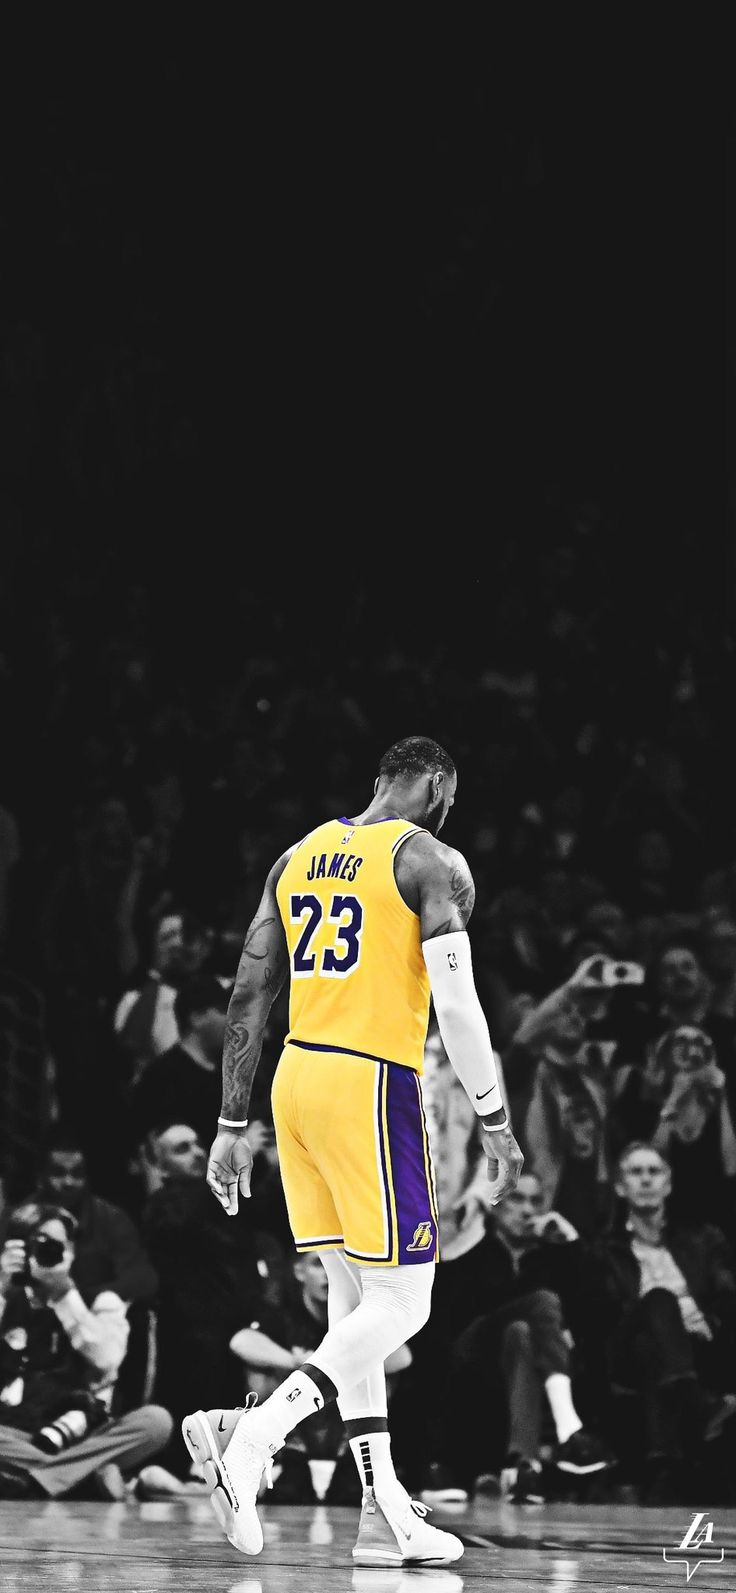 Pin by Swaggy_P (Noah Wade) on Kiss the ring Lebron